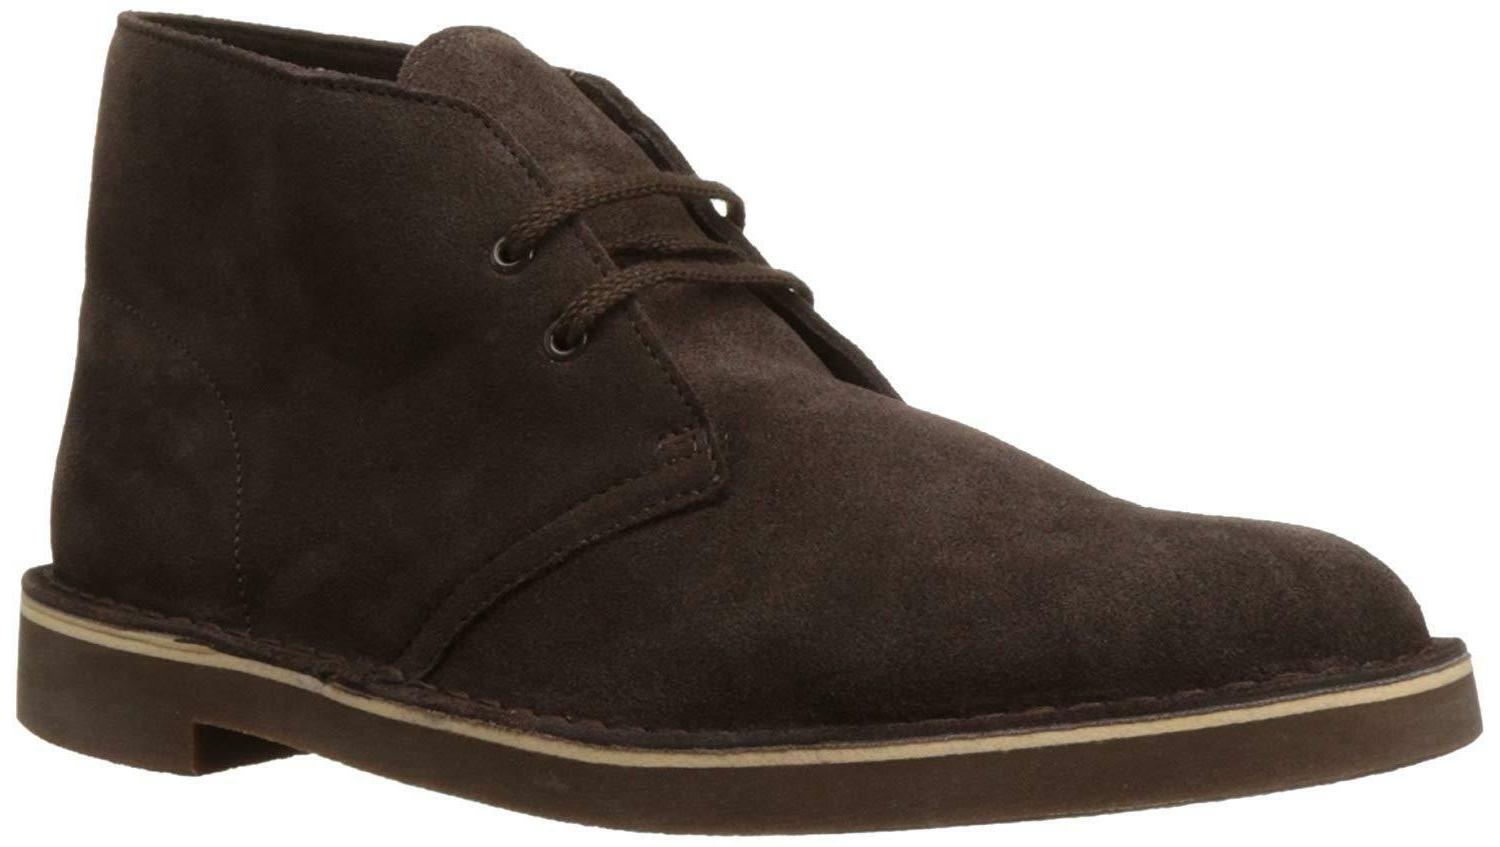 clarks men s bushacre 2 chukka boot